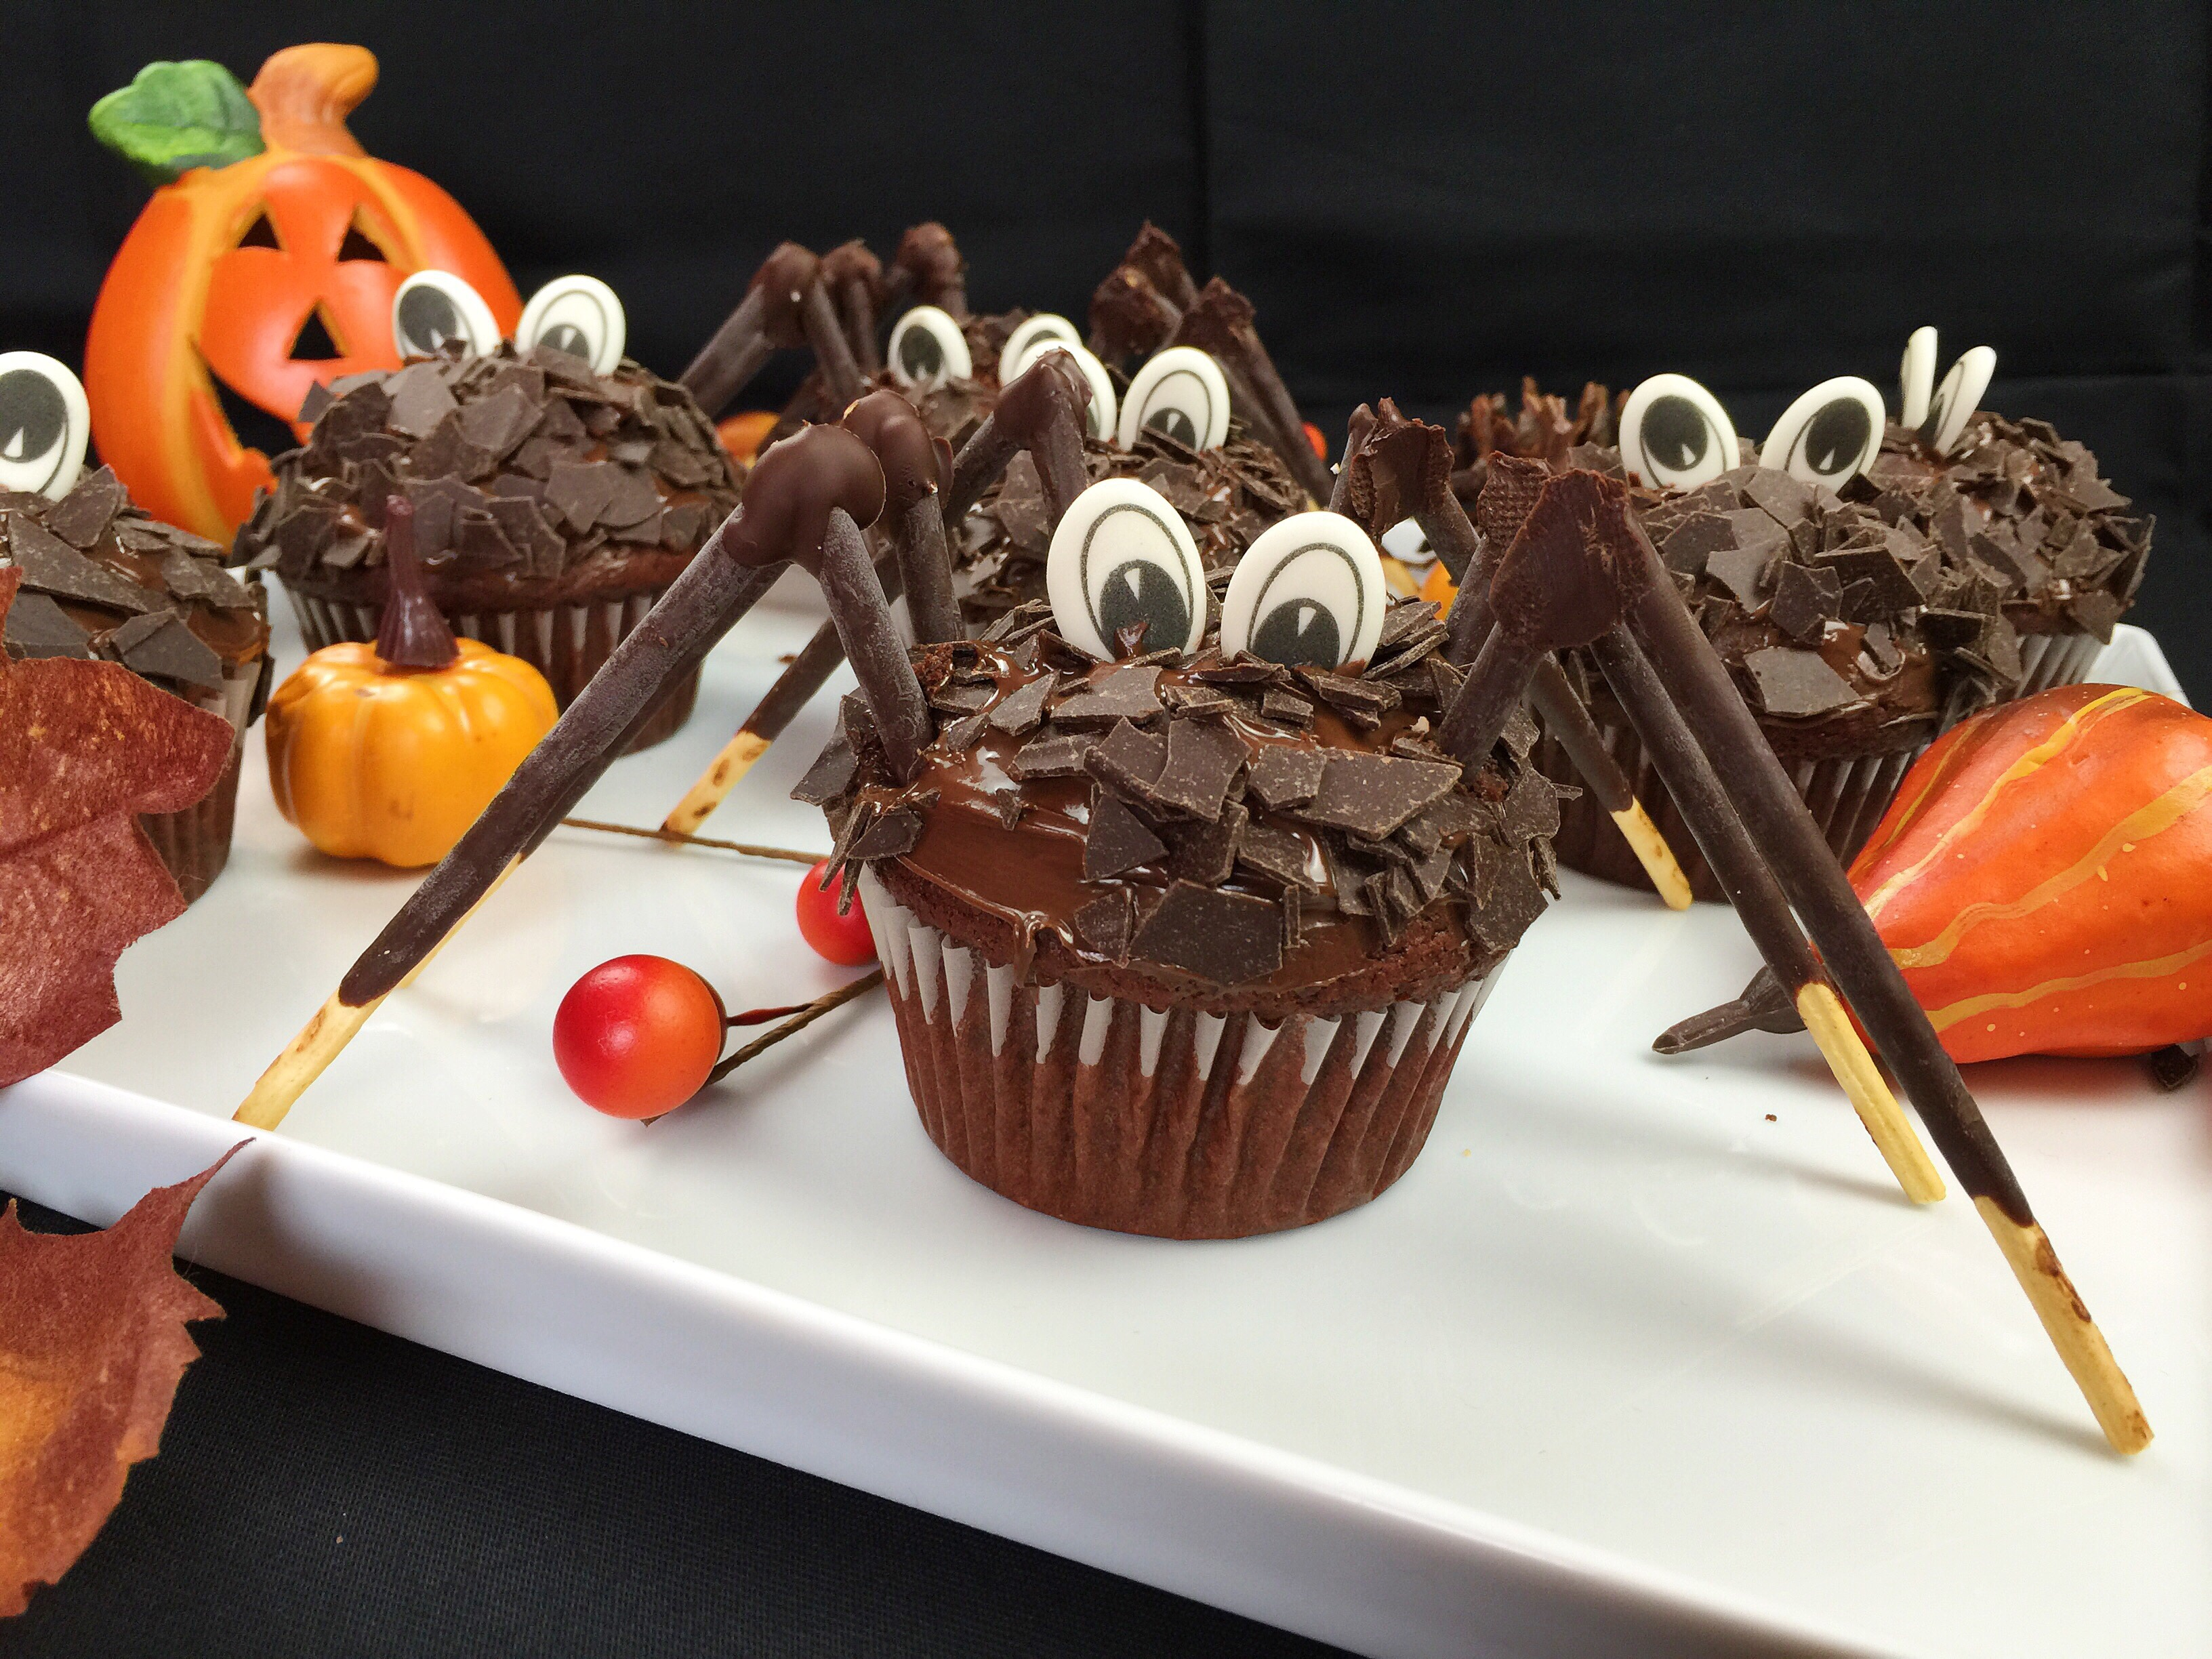 spinnen cupcakes bei cookbakery halloween woche 2015 2. Black Bedroom Furniture Sets. Home Design Ideas